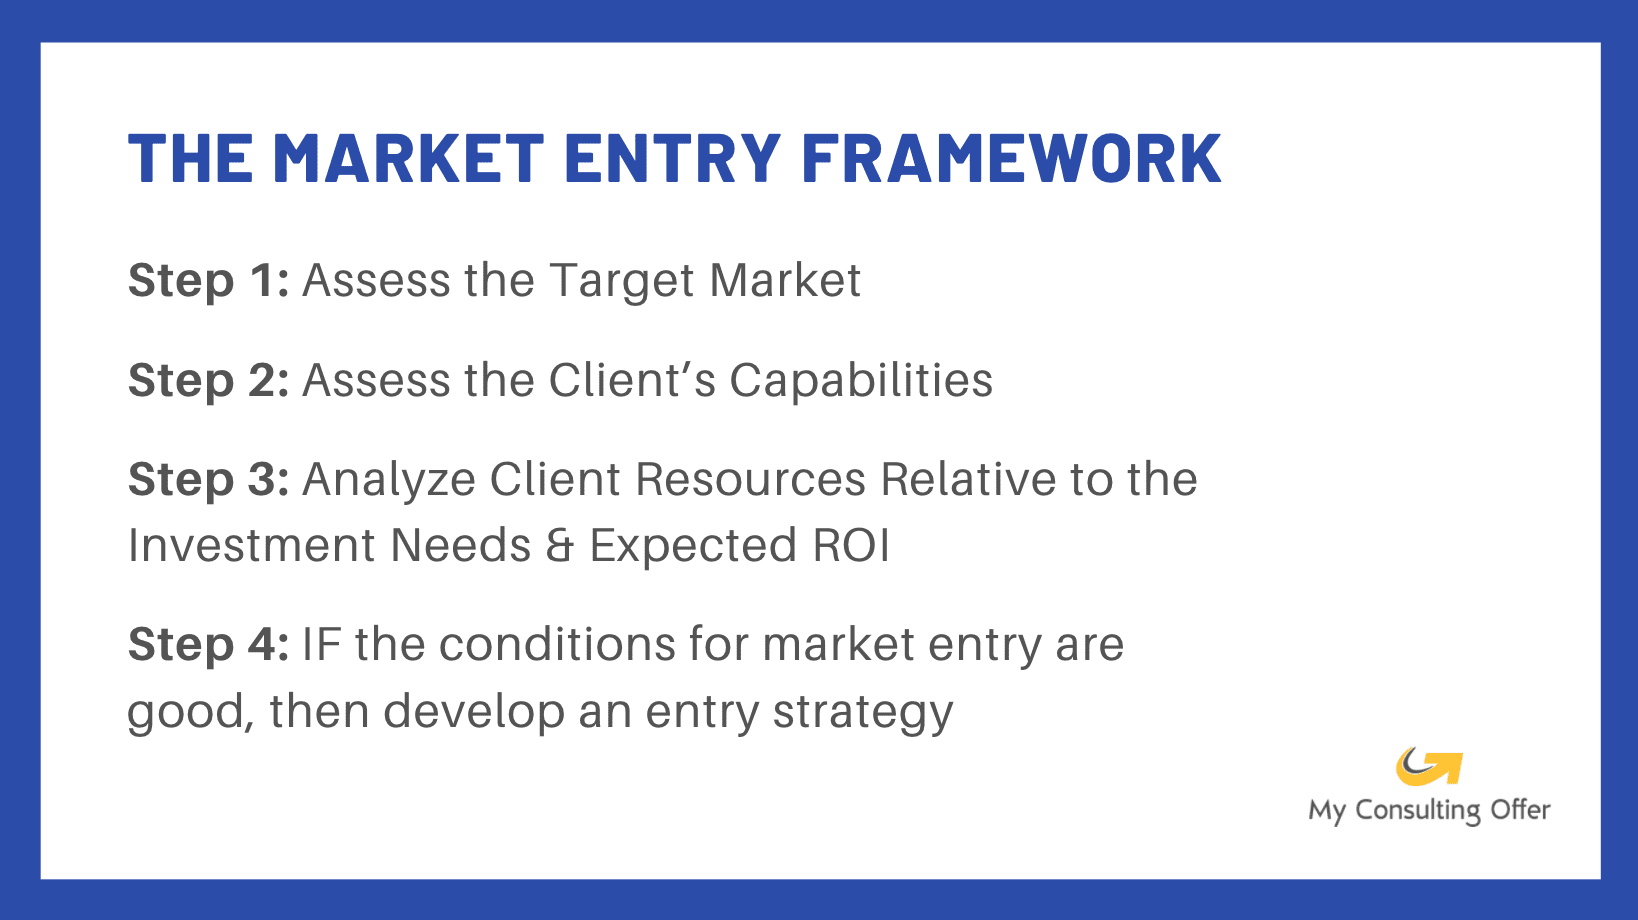 Market Entry Case Framework. This infographic shows the 4 steps in the